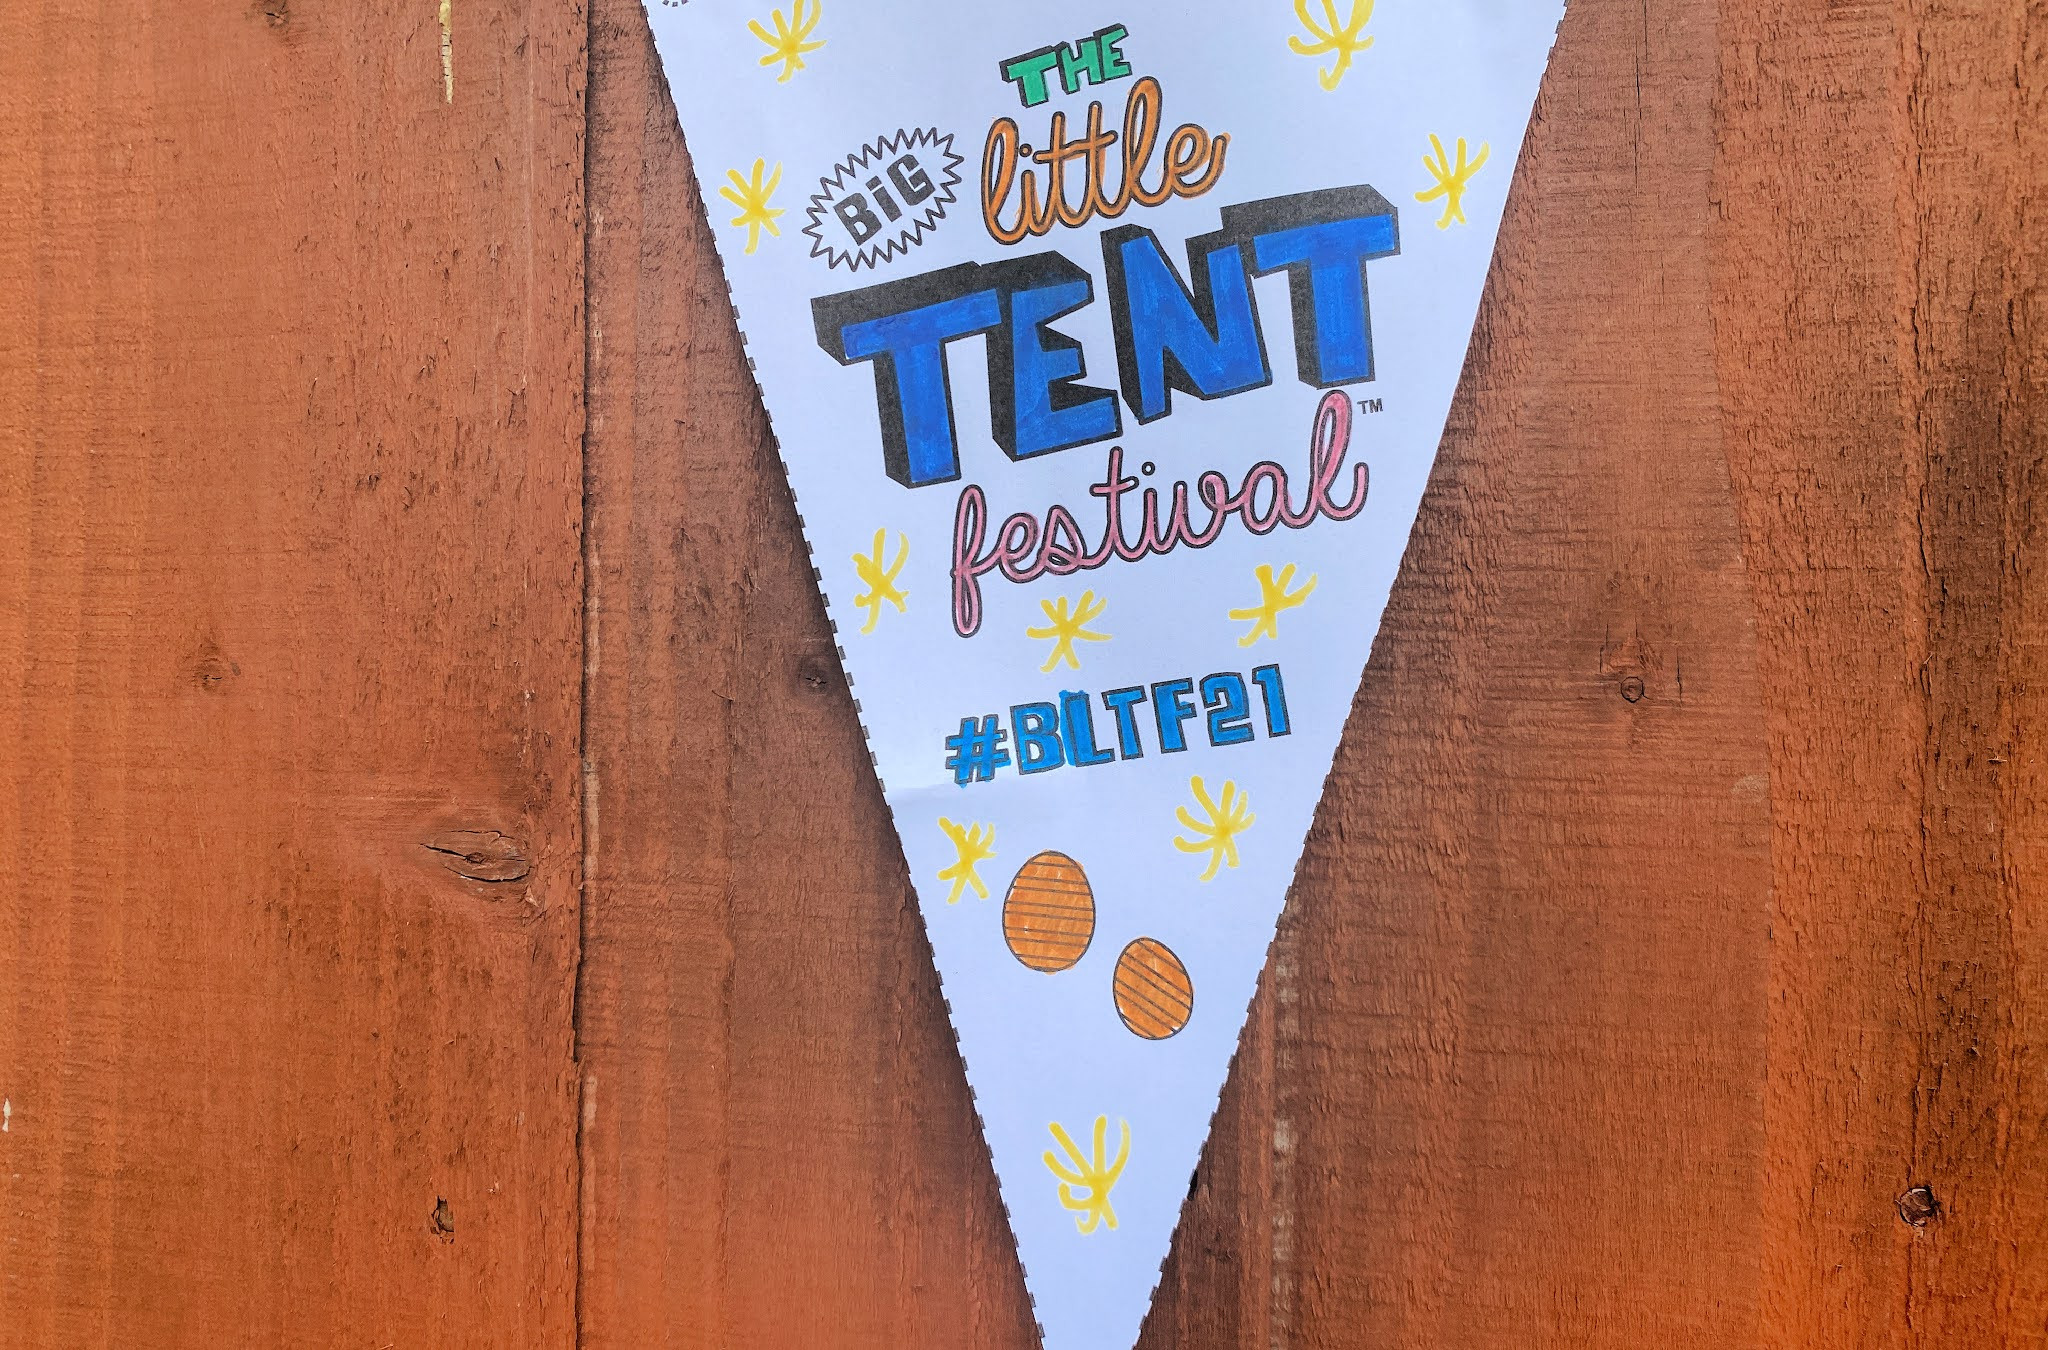 The little big tent festival bunting